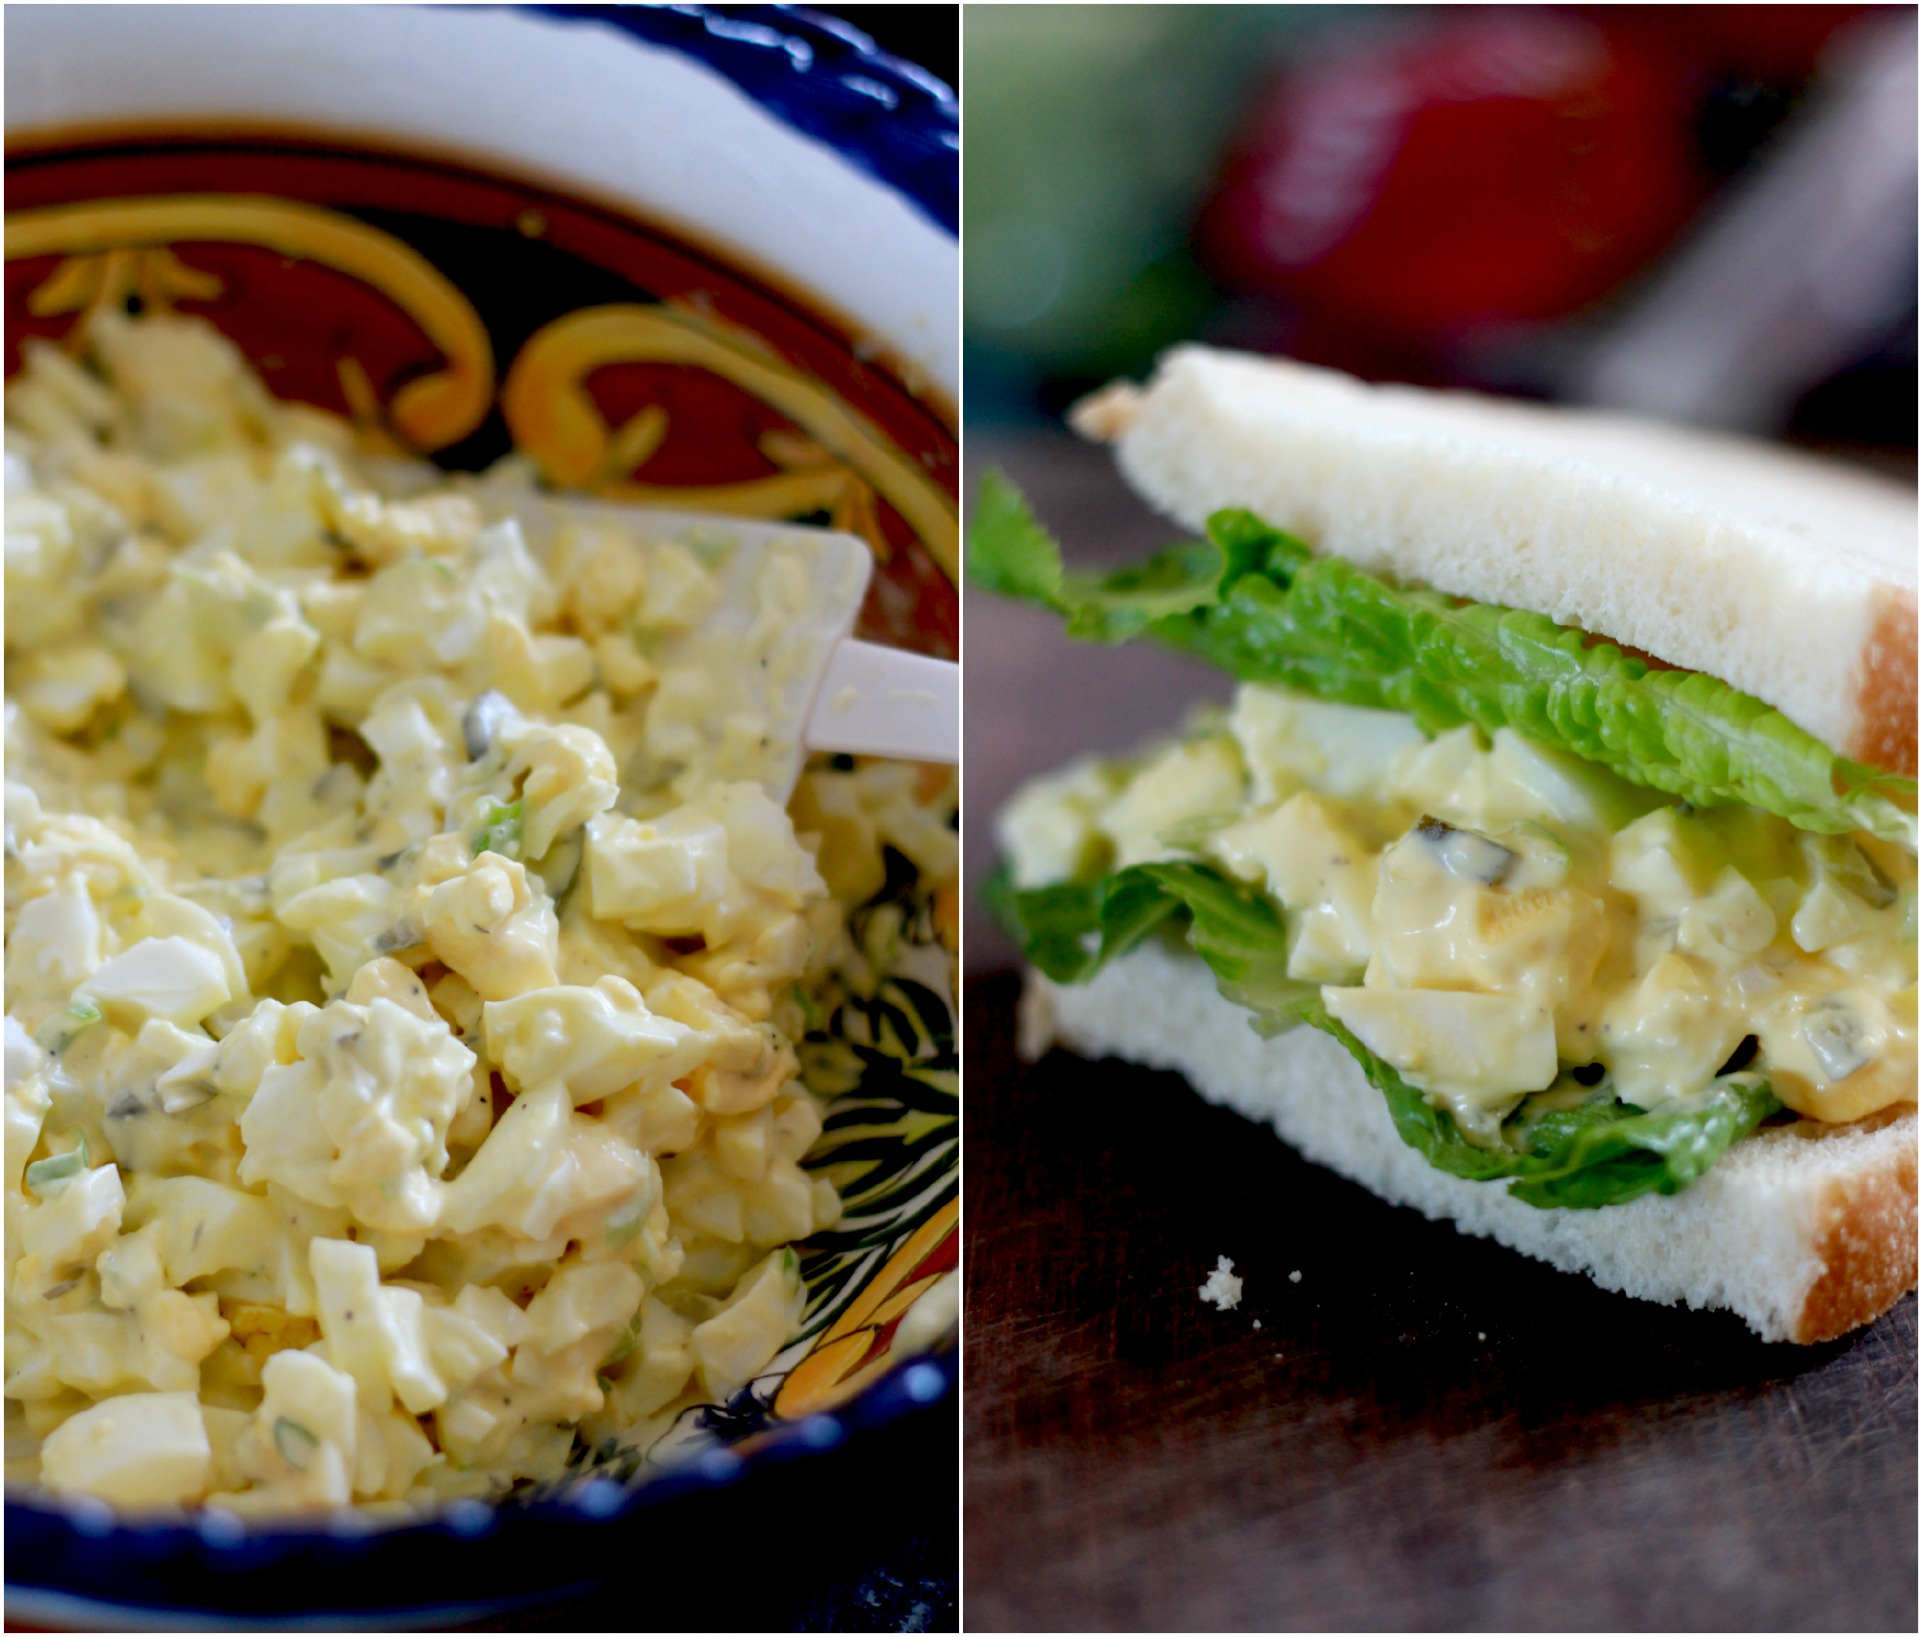 Perfect Egg Salad with Homemade Mayo and Lacto-Fermented Pickles {Gluten Free and Grain Free Option}